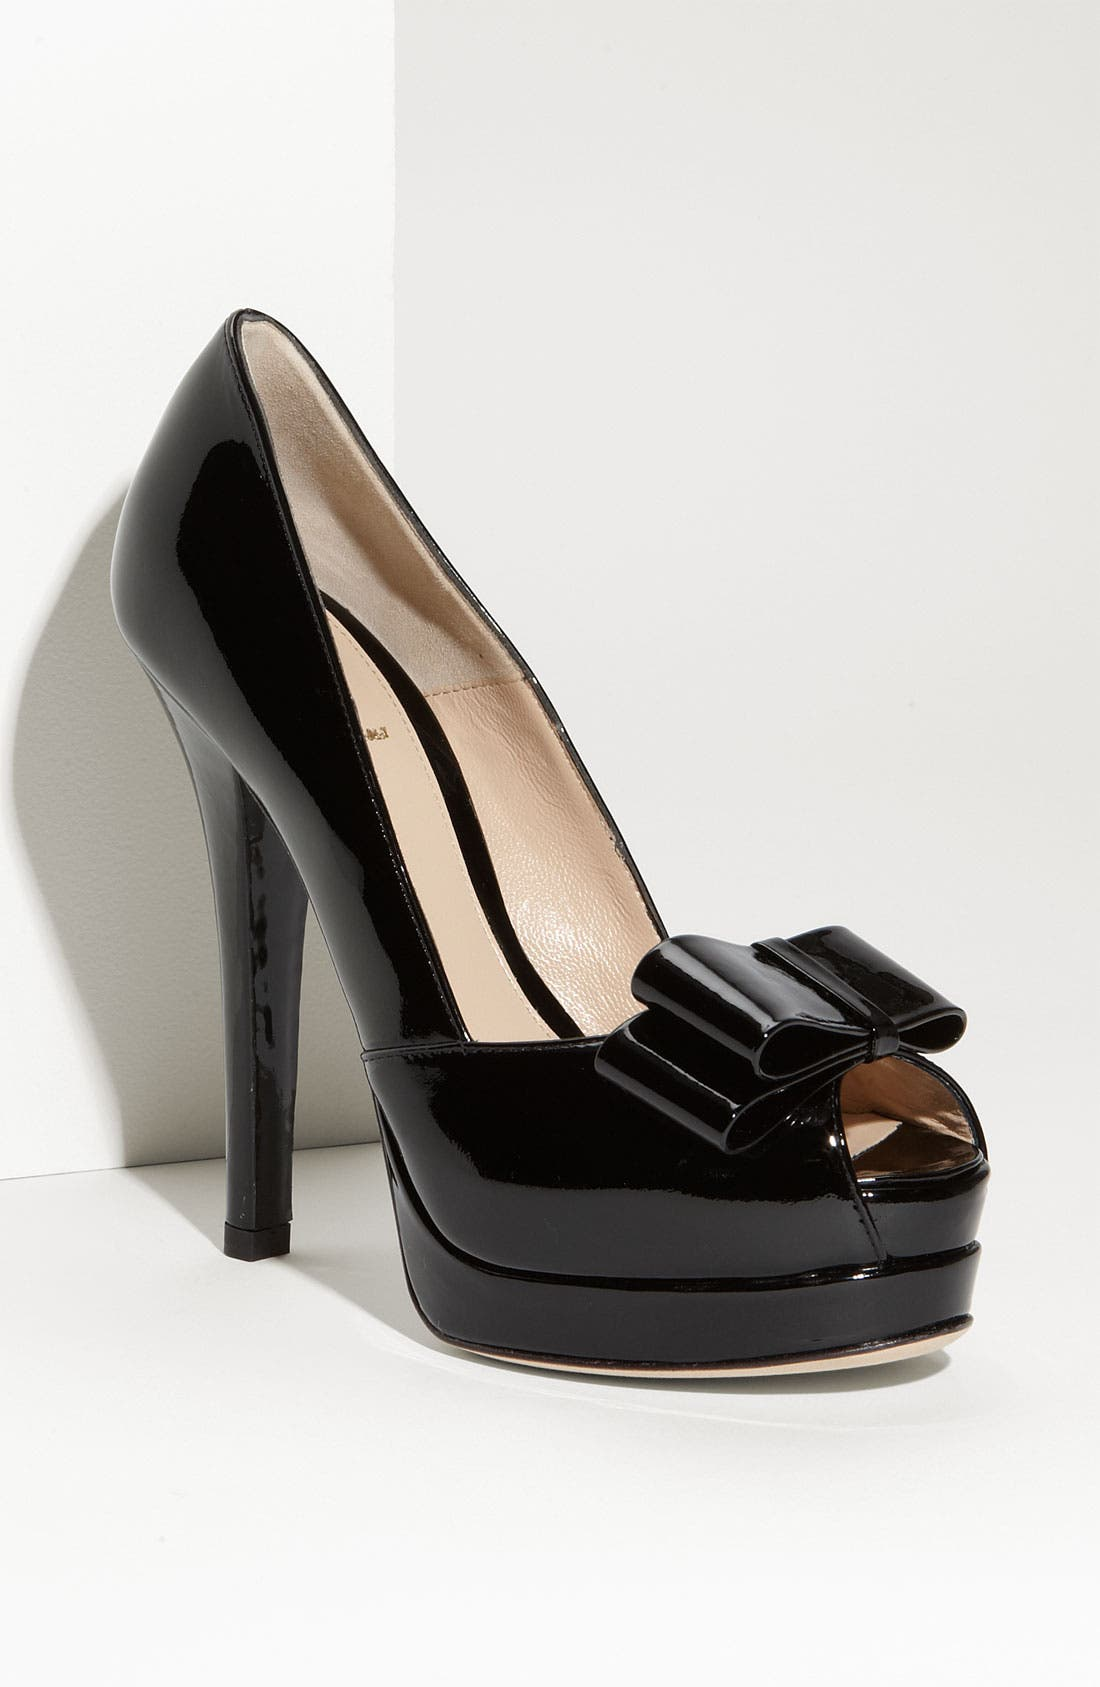 Main Image - Fendi 'Deco' Bow Trim Pump